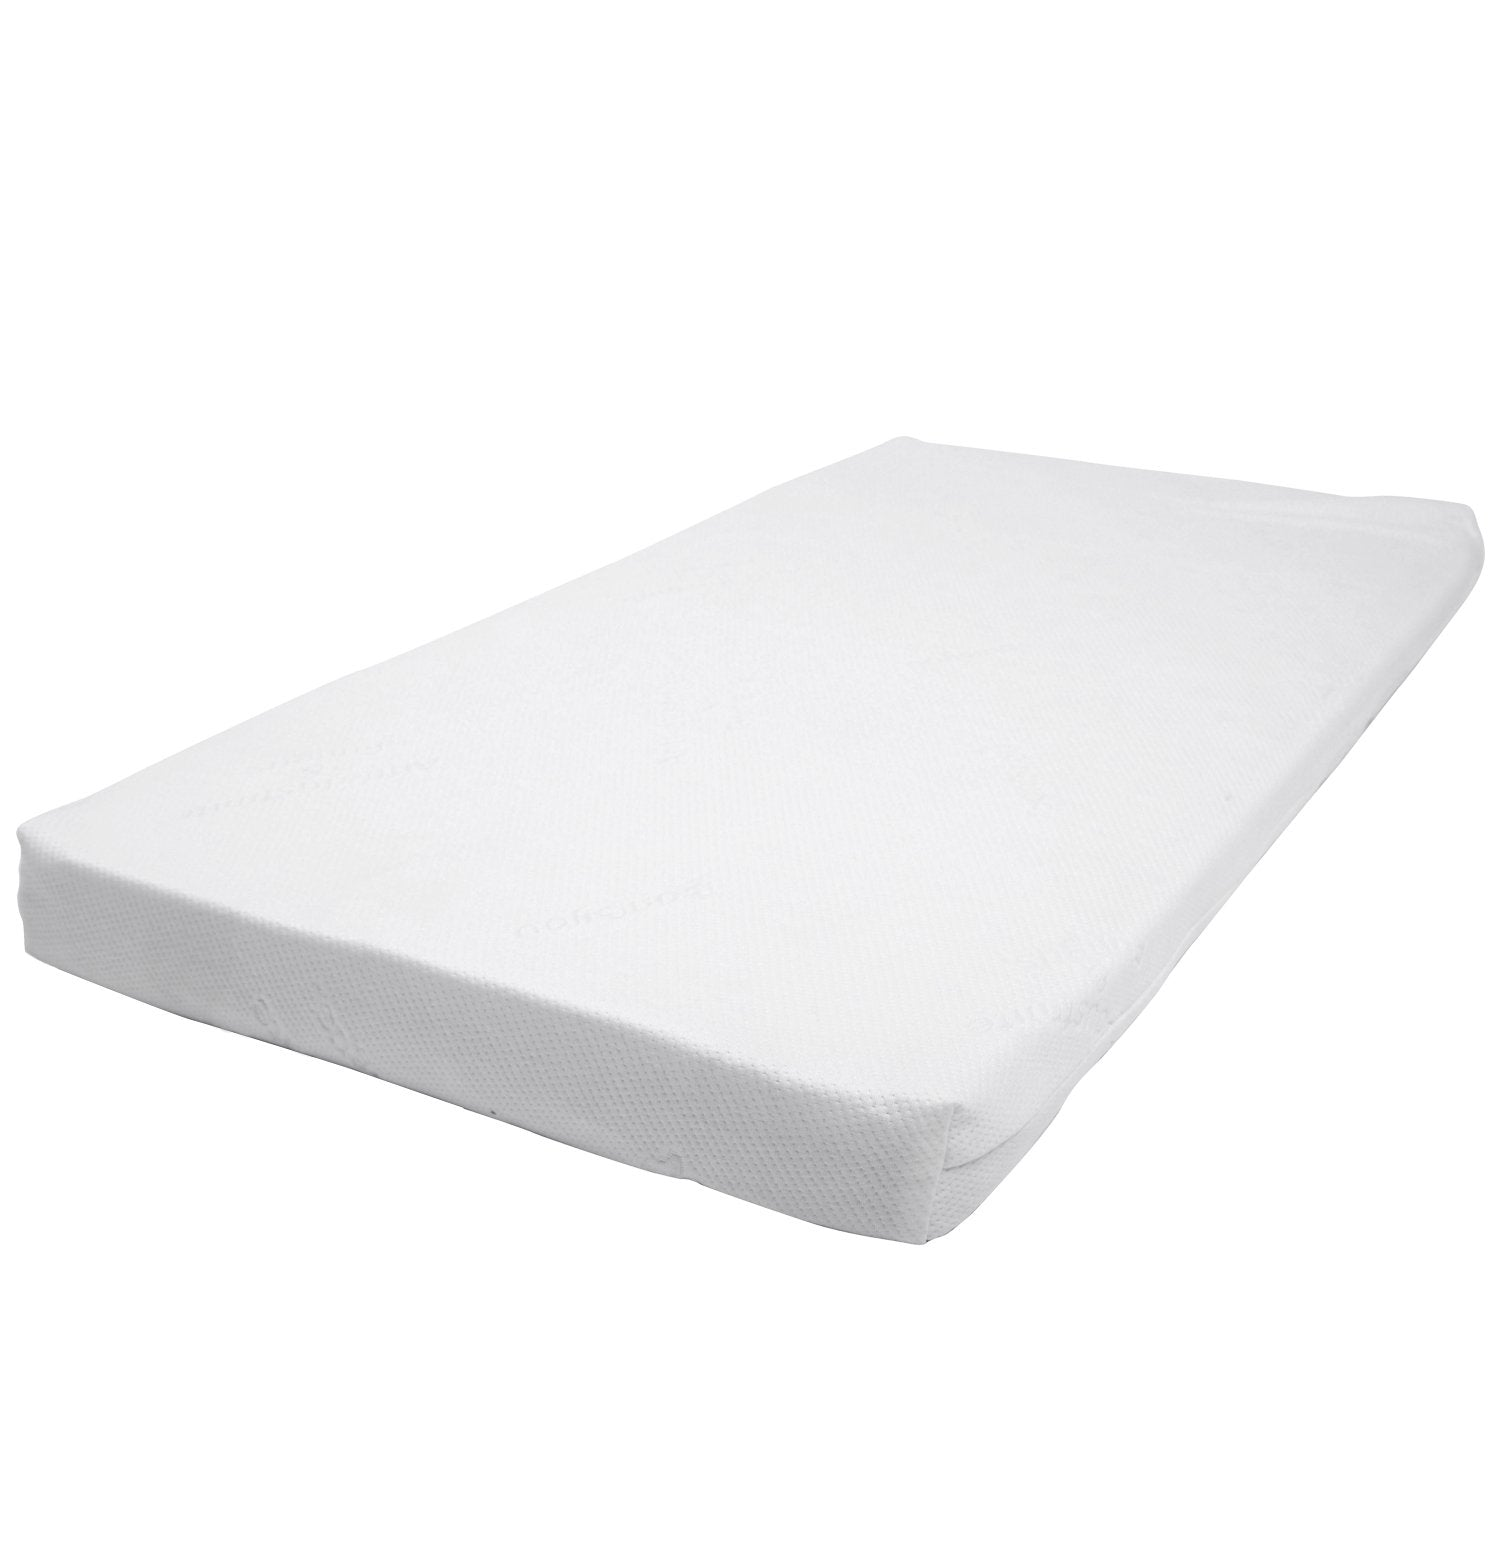 Bonbijou Anti Dust-Mite High Density Foam Mattress With Bamboo Cover - Bonbijou